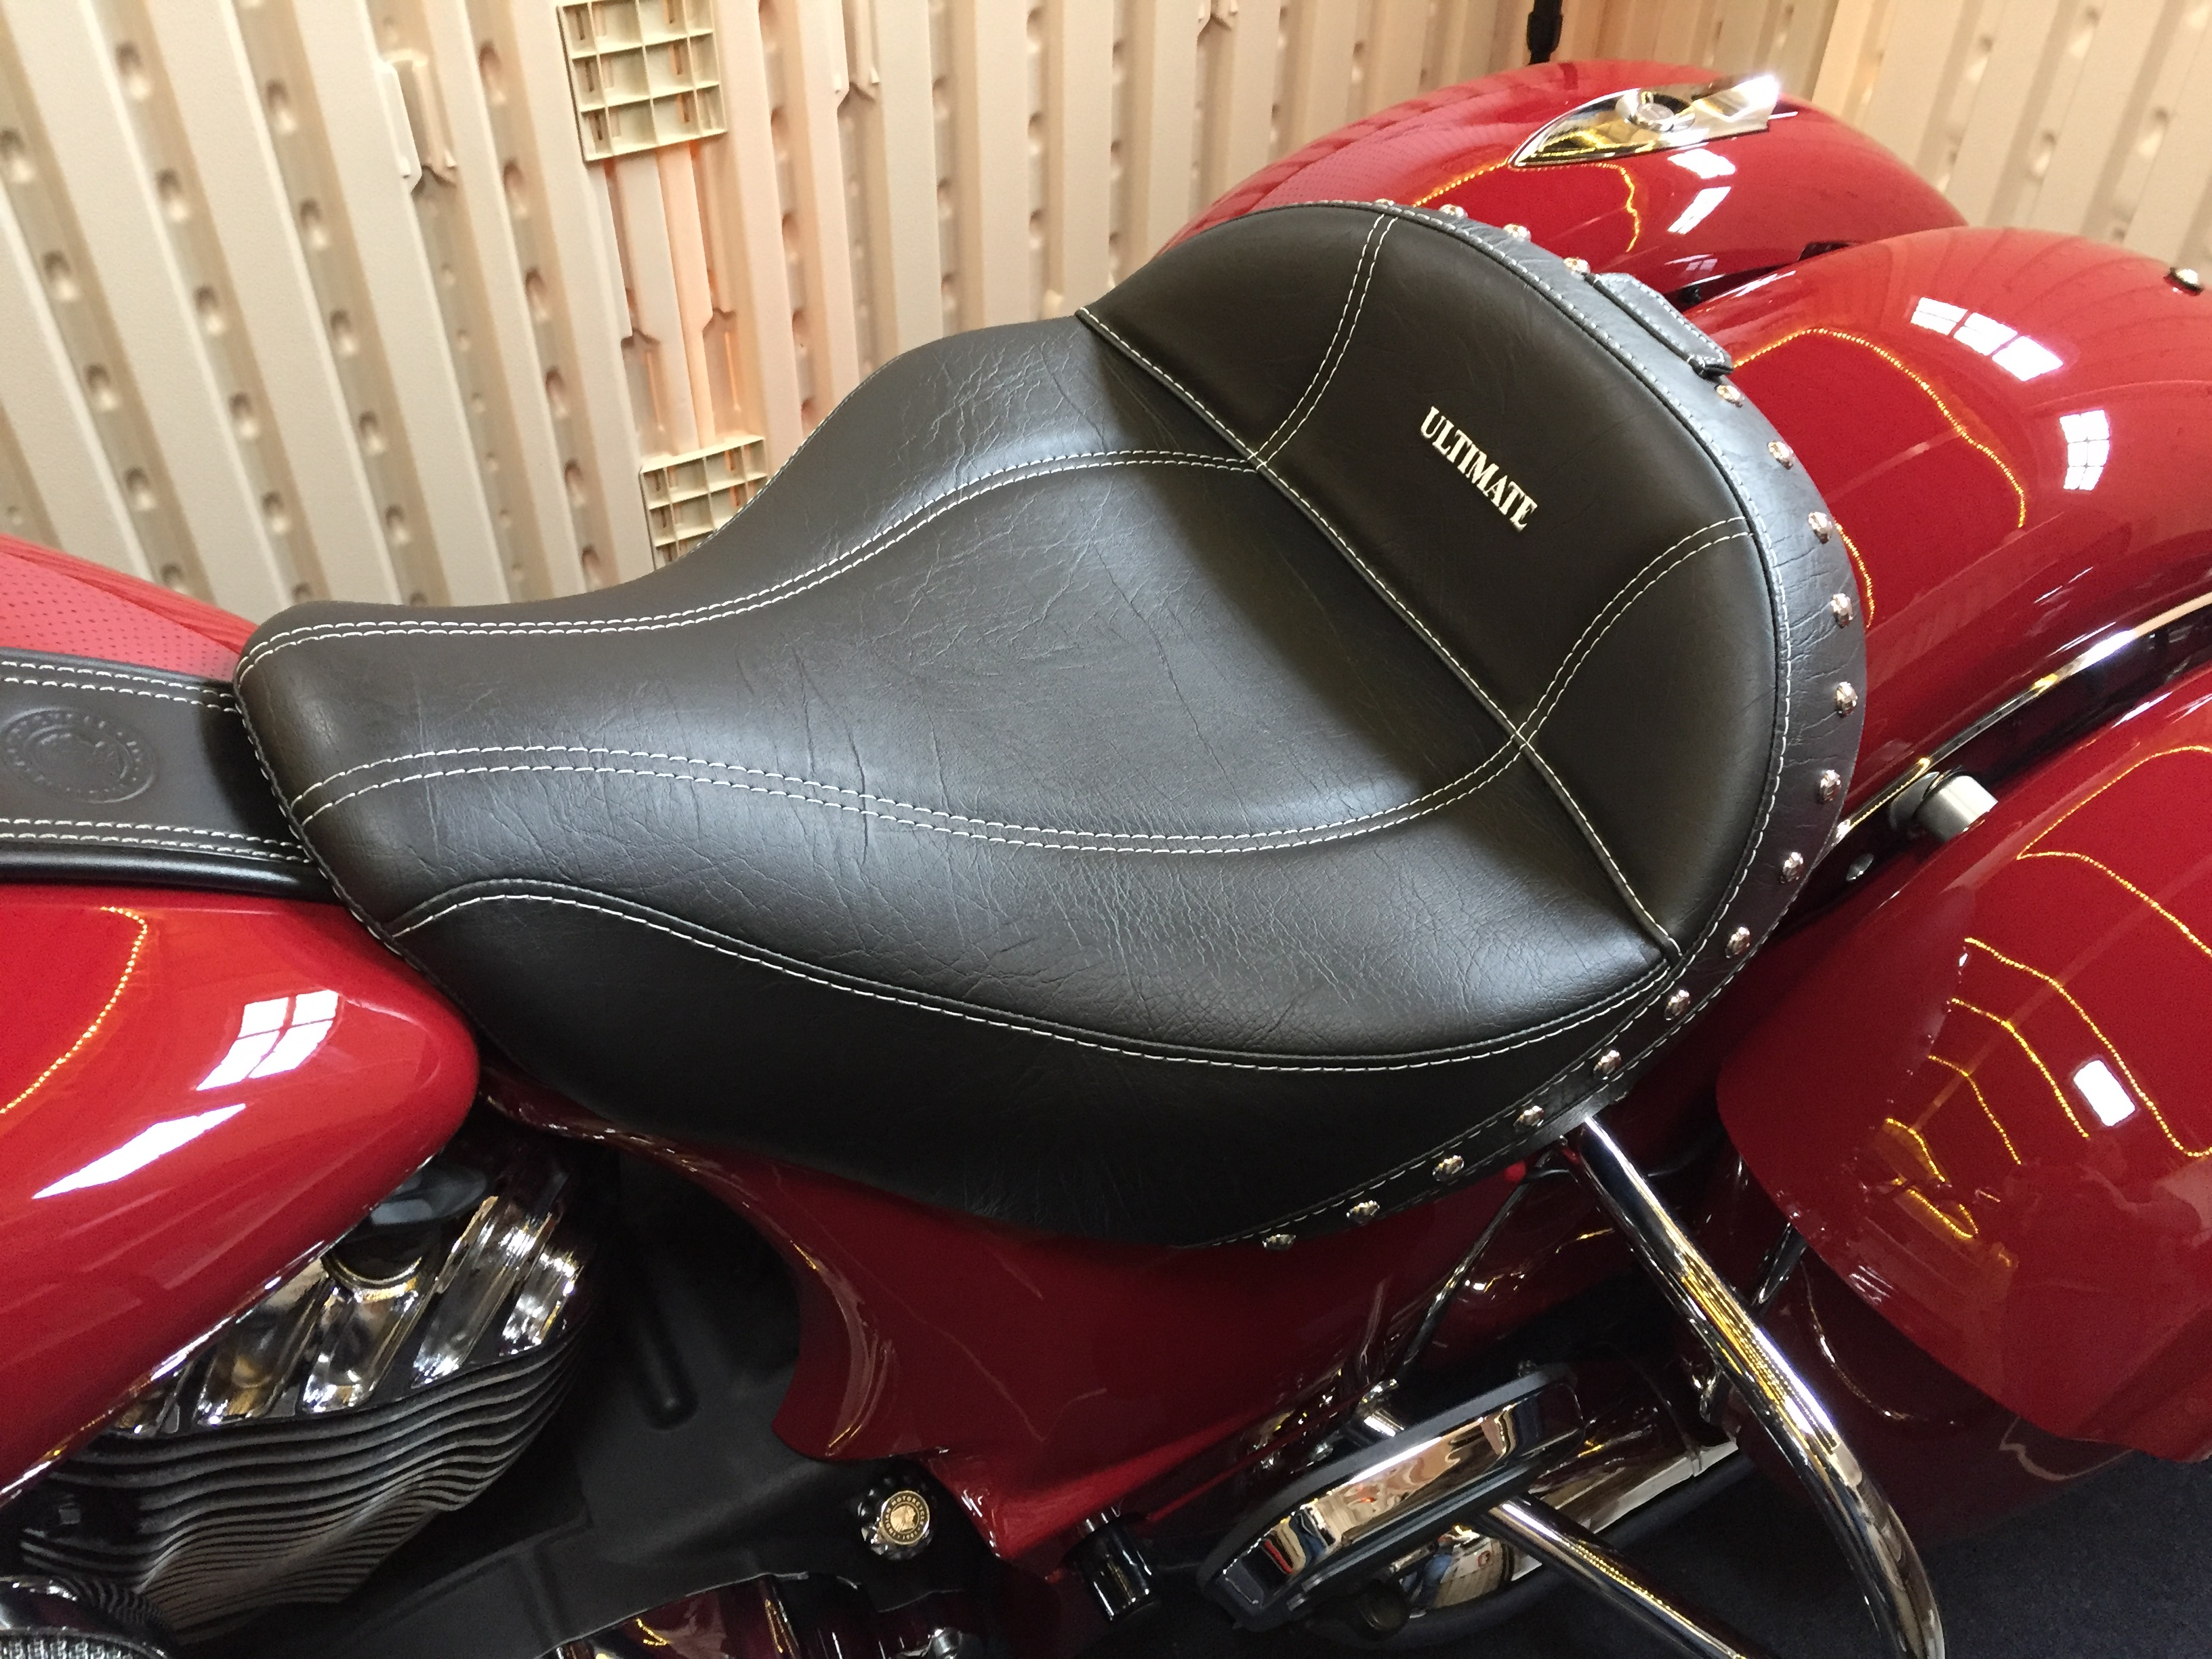 Ultimate Motorcycle Seats >> Ultimate Seats Tall Boy Page 9 Indian Motorcycle Forum